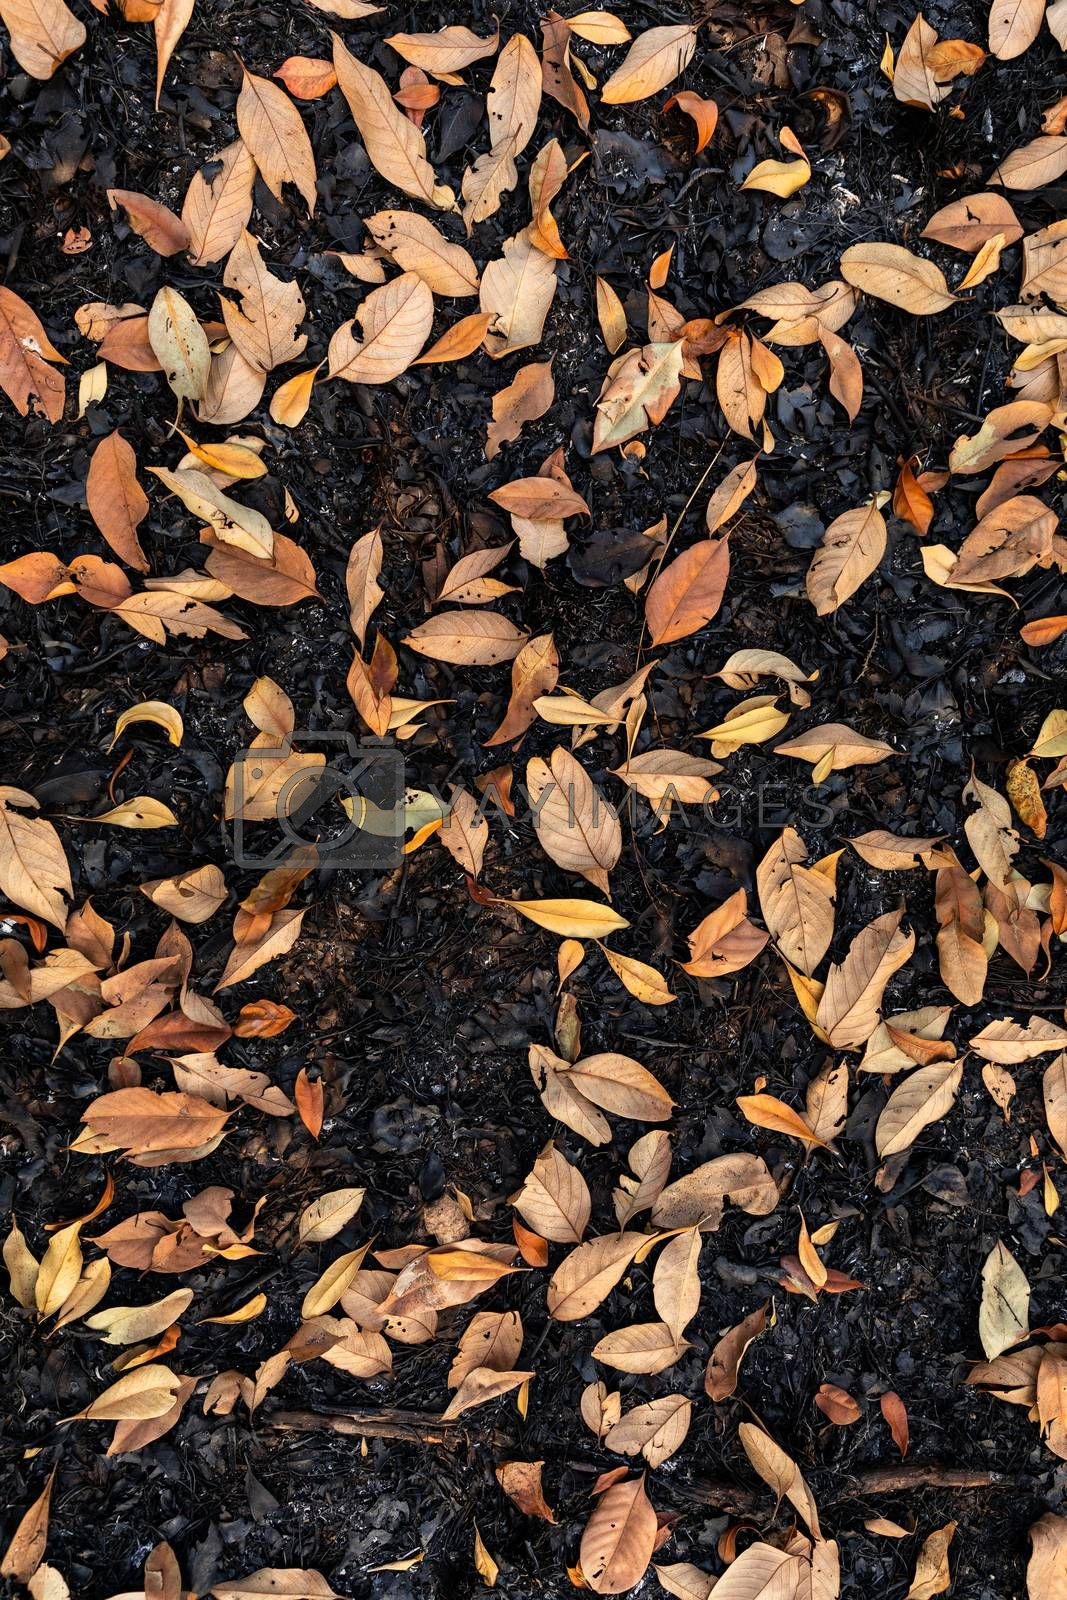 Dry orange leaves on burnt ground in black color after burning from fire in tropical rainforest.